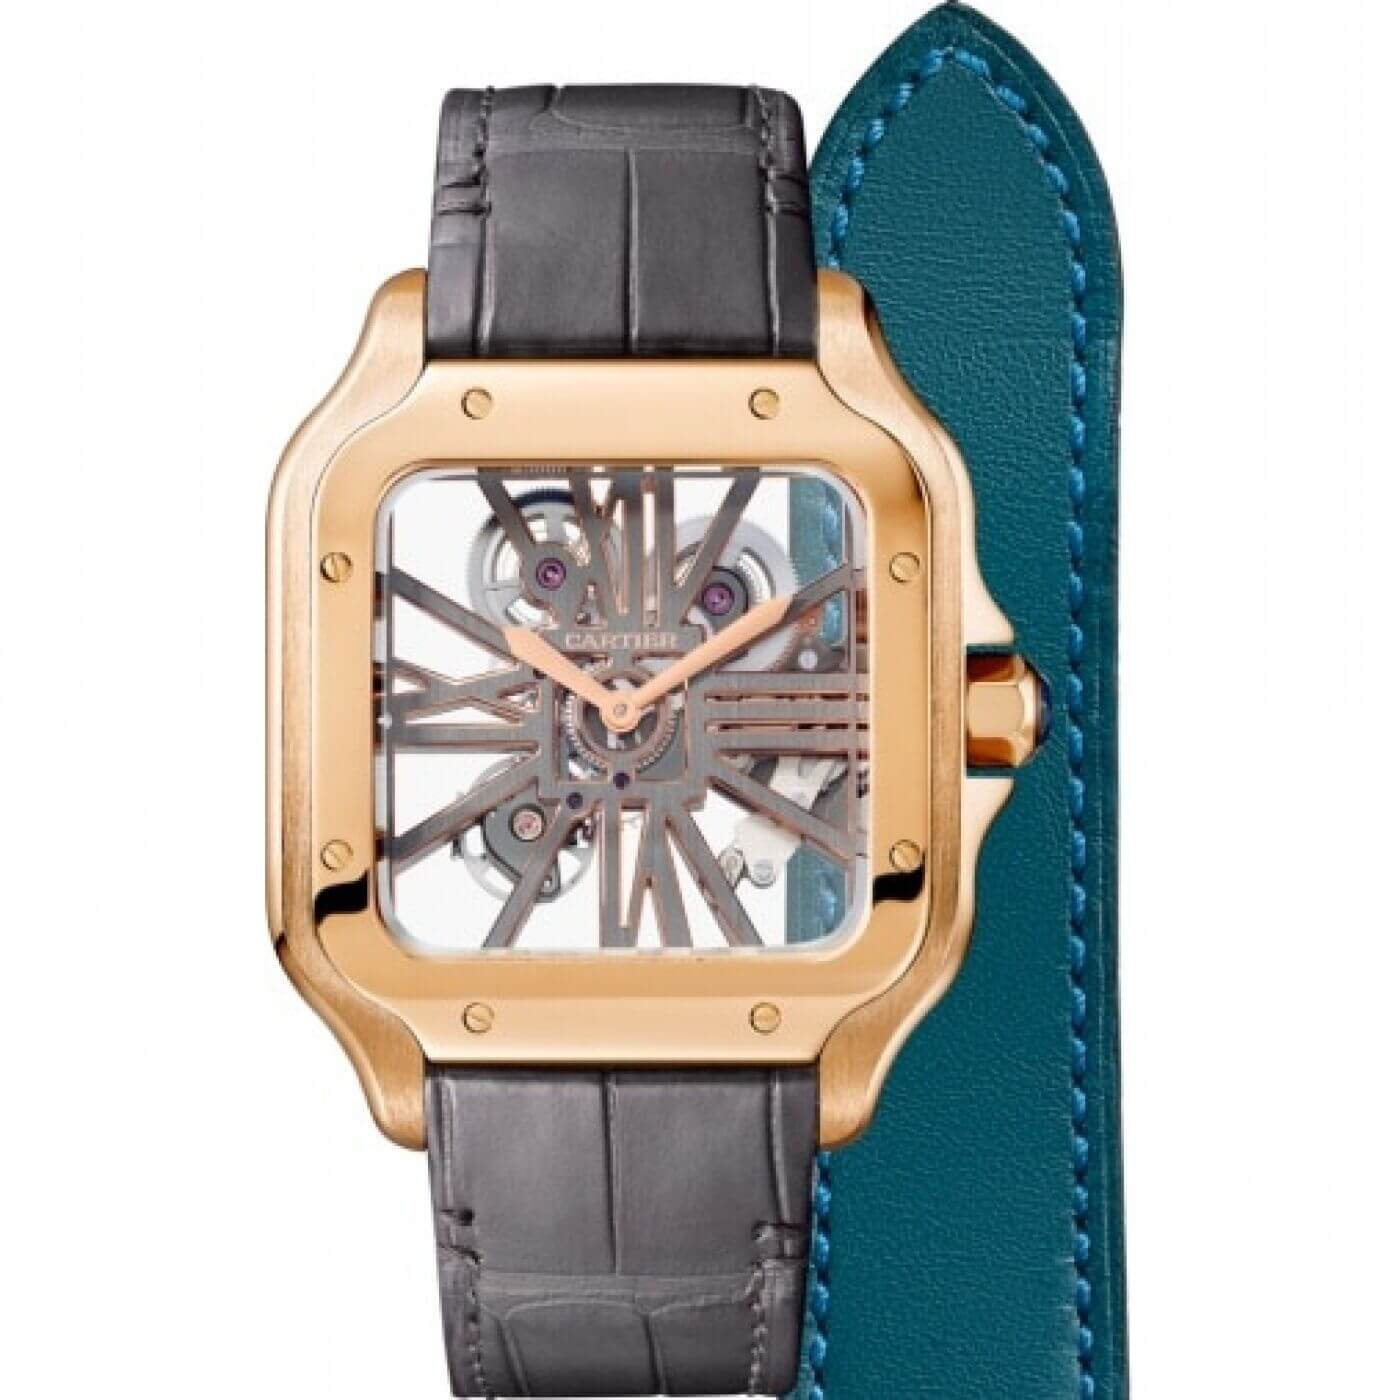 Cartier Santos Mechanical with Manual Winding WHSA0010 Unisex Reproduction